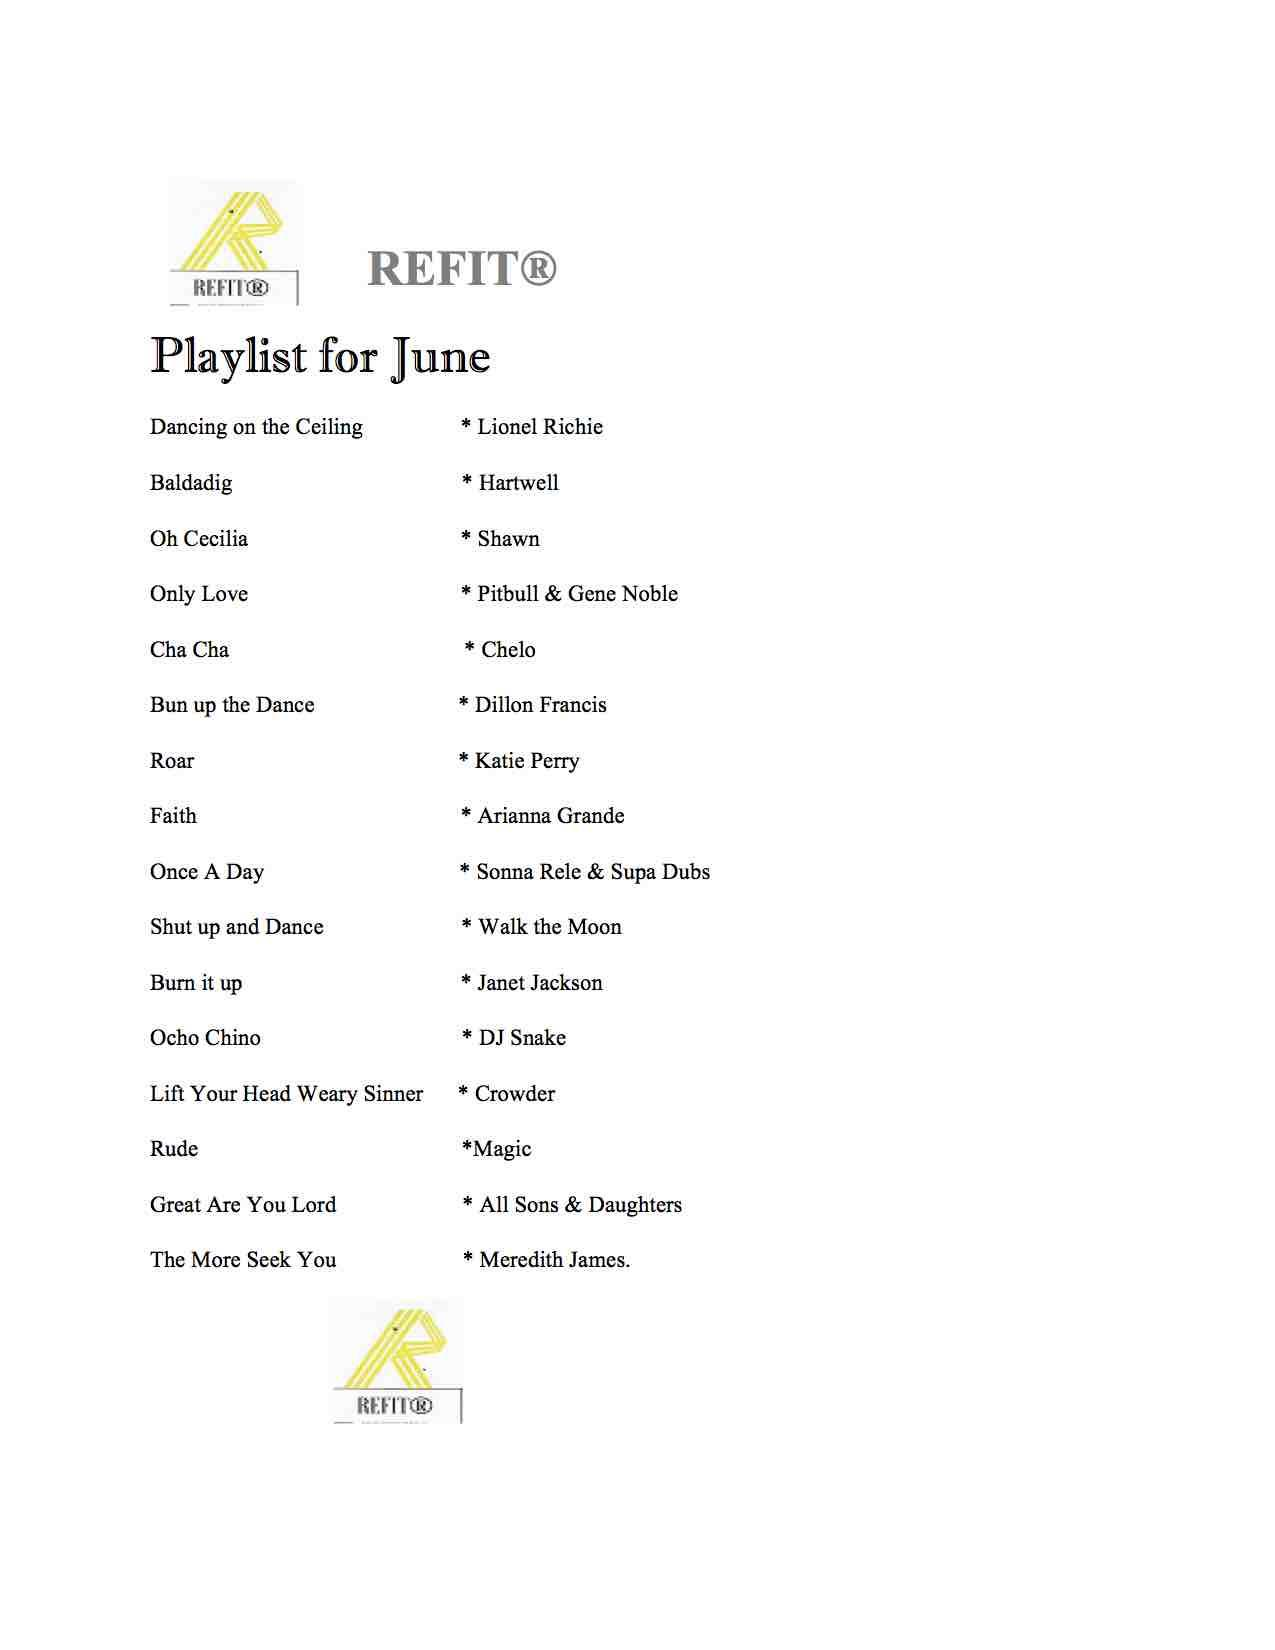 REFIT JUNE PLAY LIST